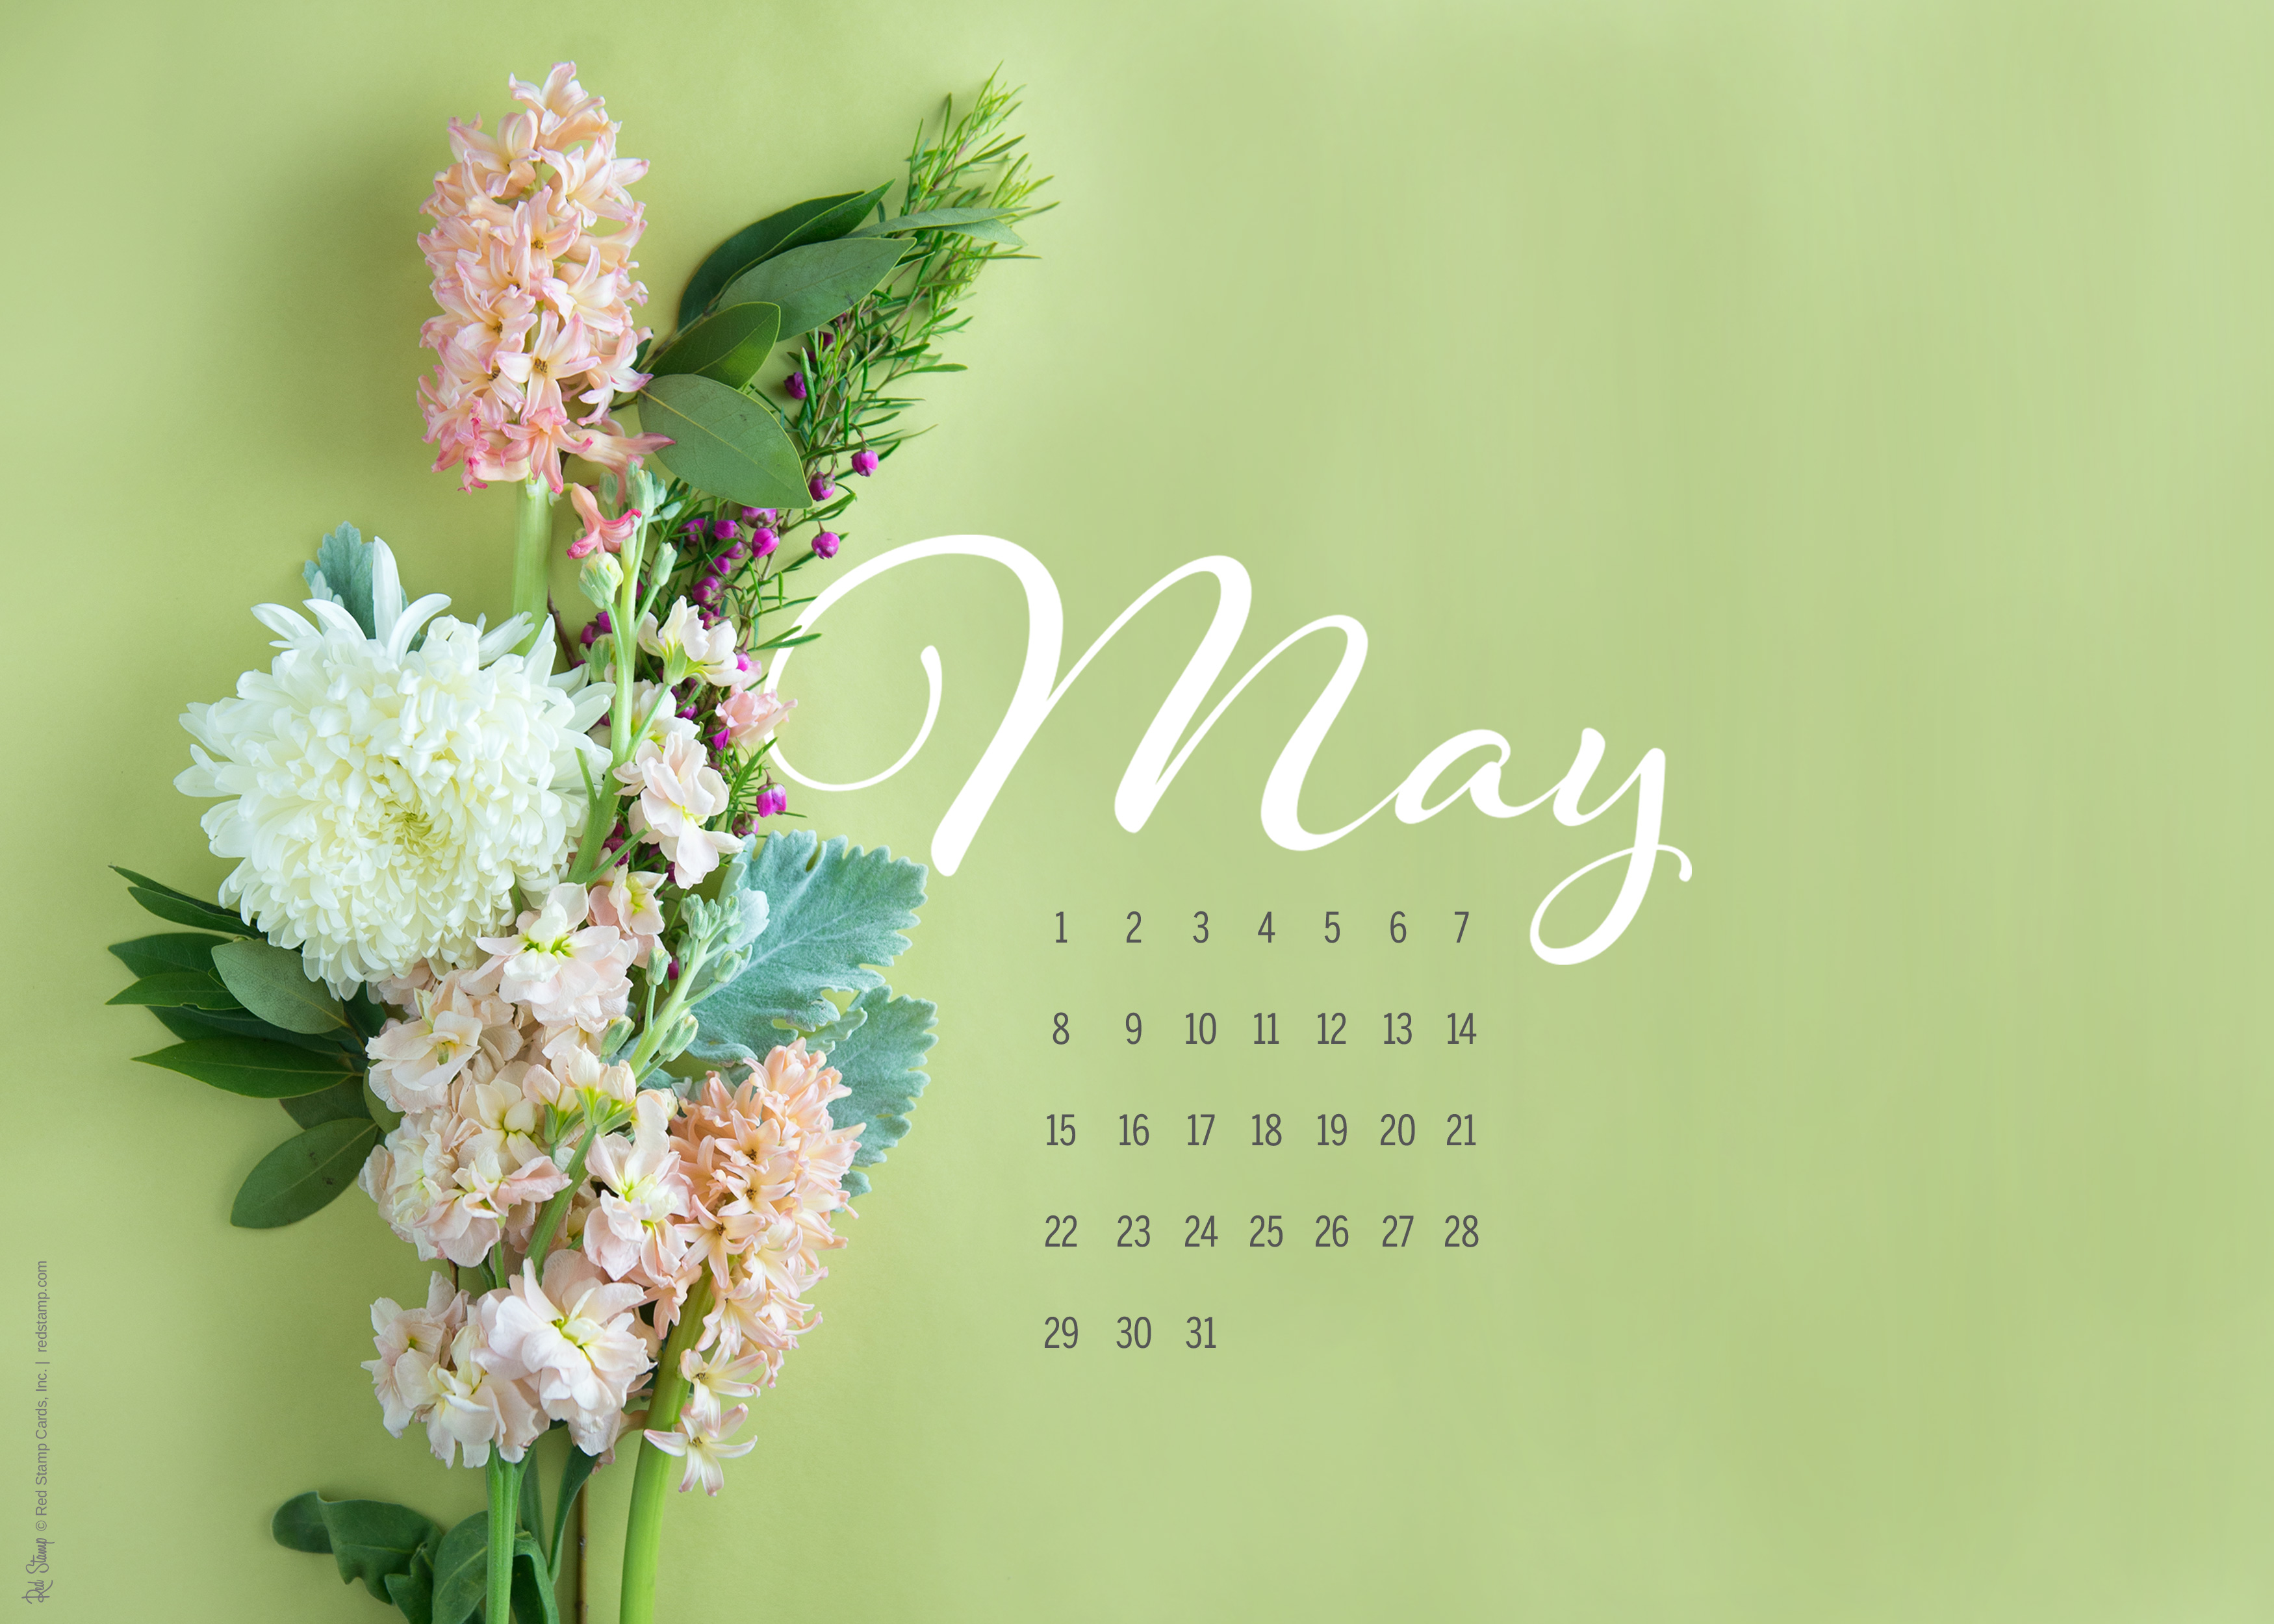 May 2016 Calendars and Wallpaper   Red Stamp 3500x2500